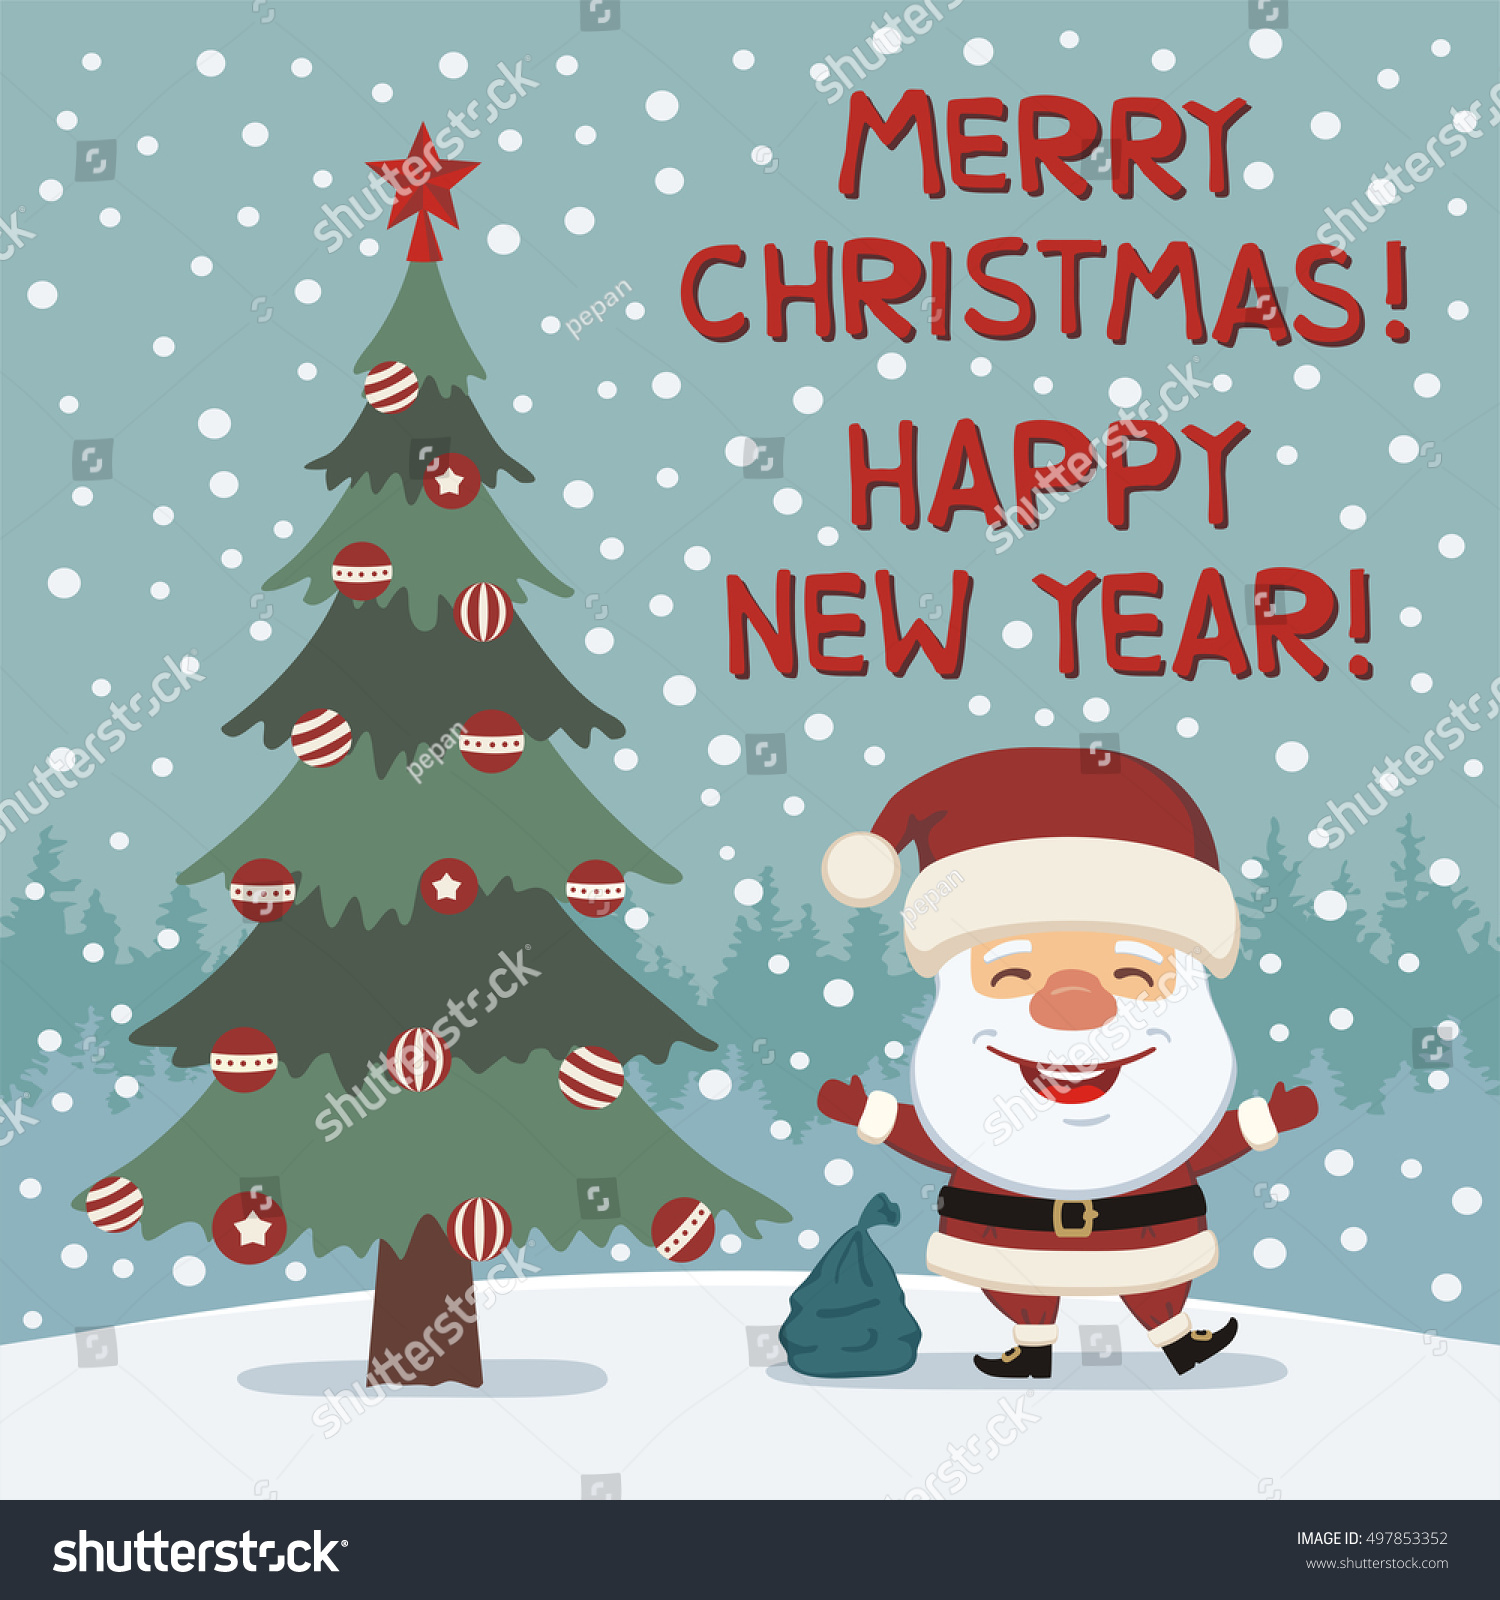 Merry Christmas and Happy New year! Funny Santa Claus dancing ...